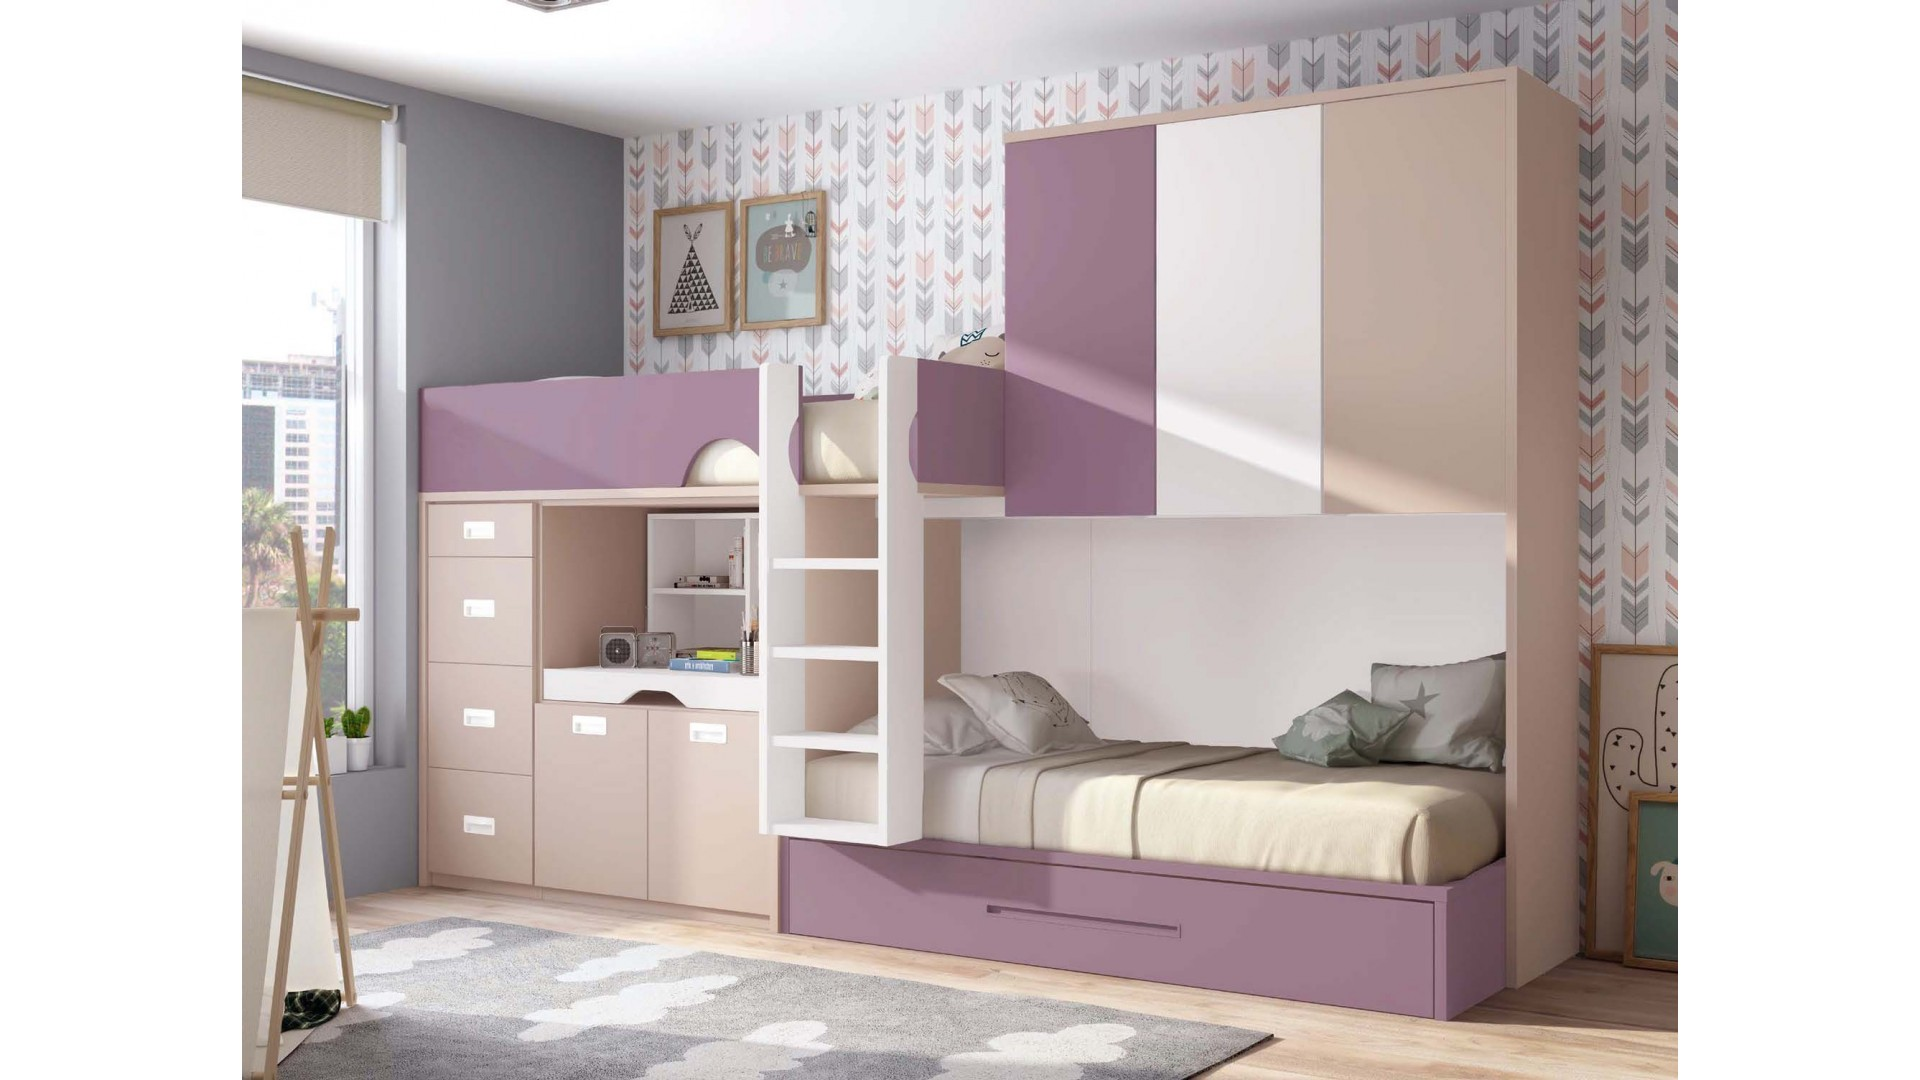 lit superpos fille personnalisable lit gigogne. Black Bedroom Furniture Sets. Home Design Ideas